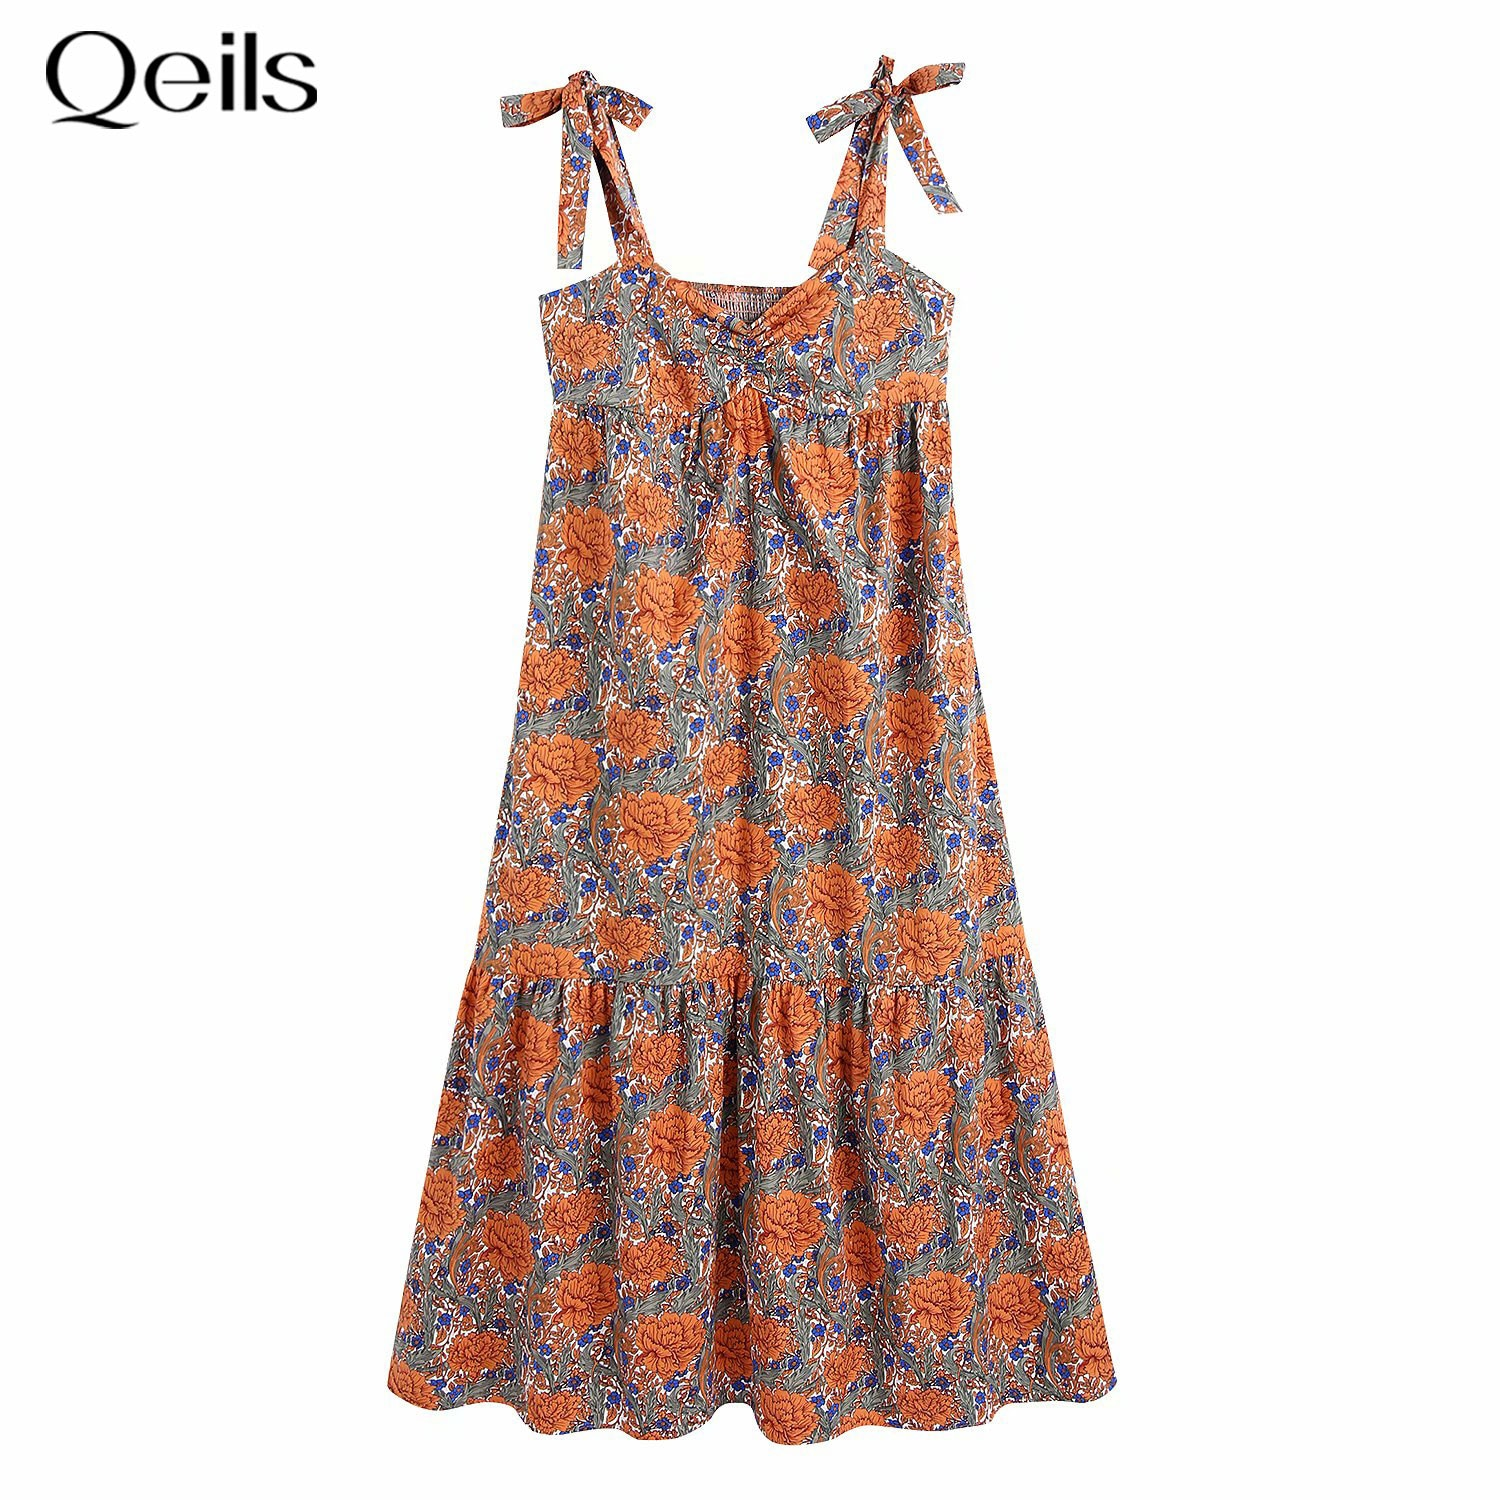 Qeils Mini Long Sleeve Dress Women Sexy Print Single Breasted Wrinkle Casual Women Dress Summer 2021